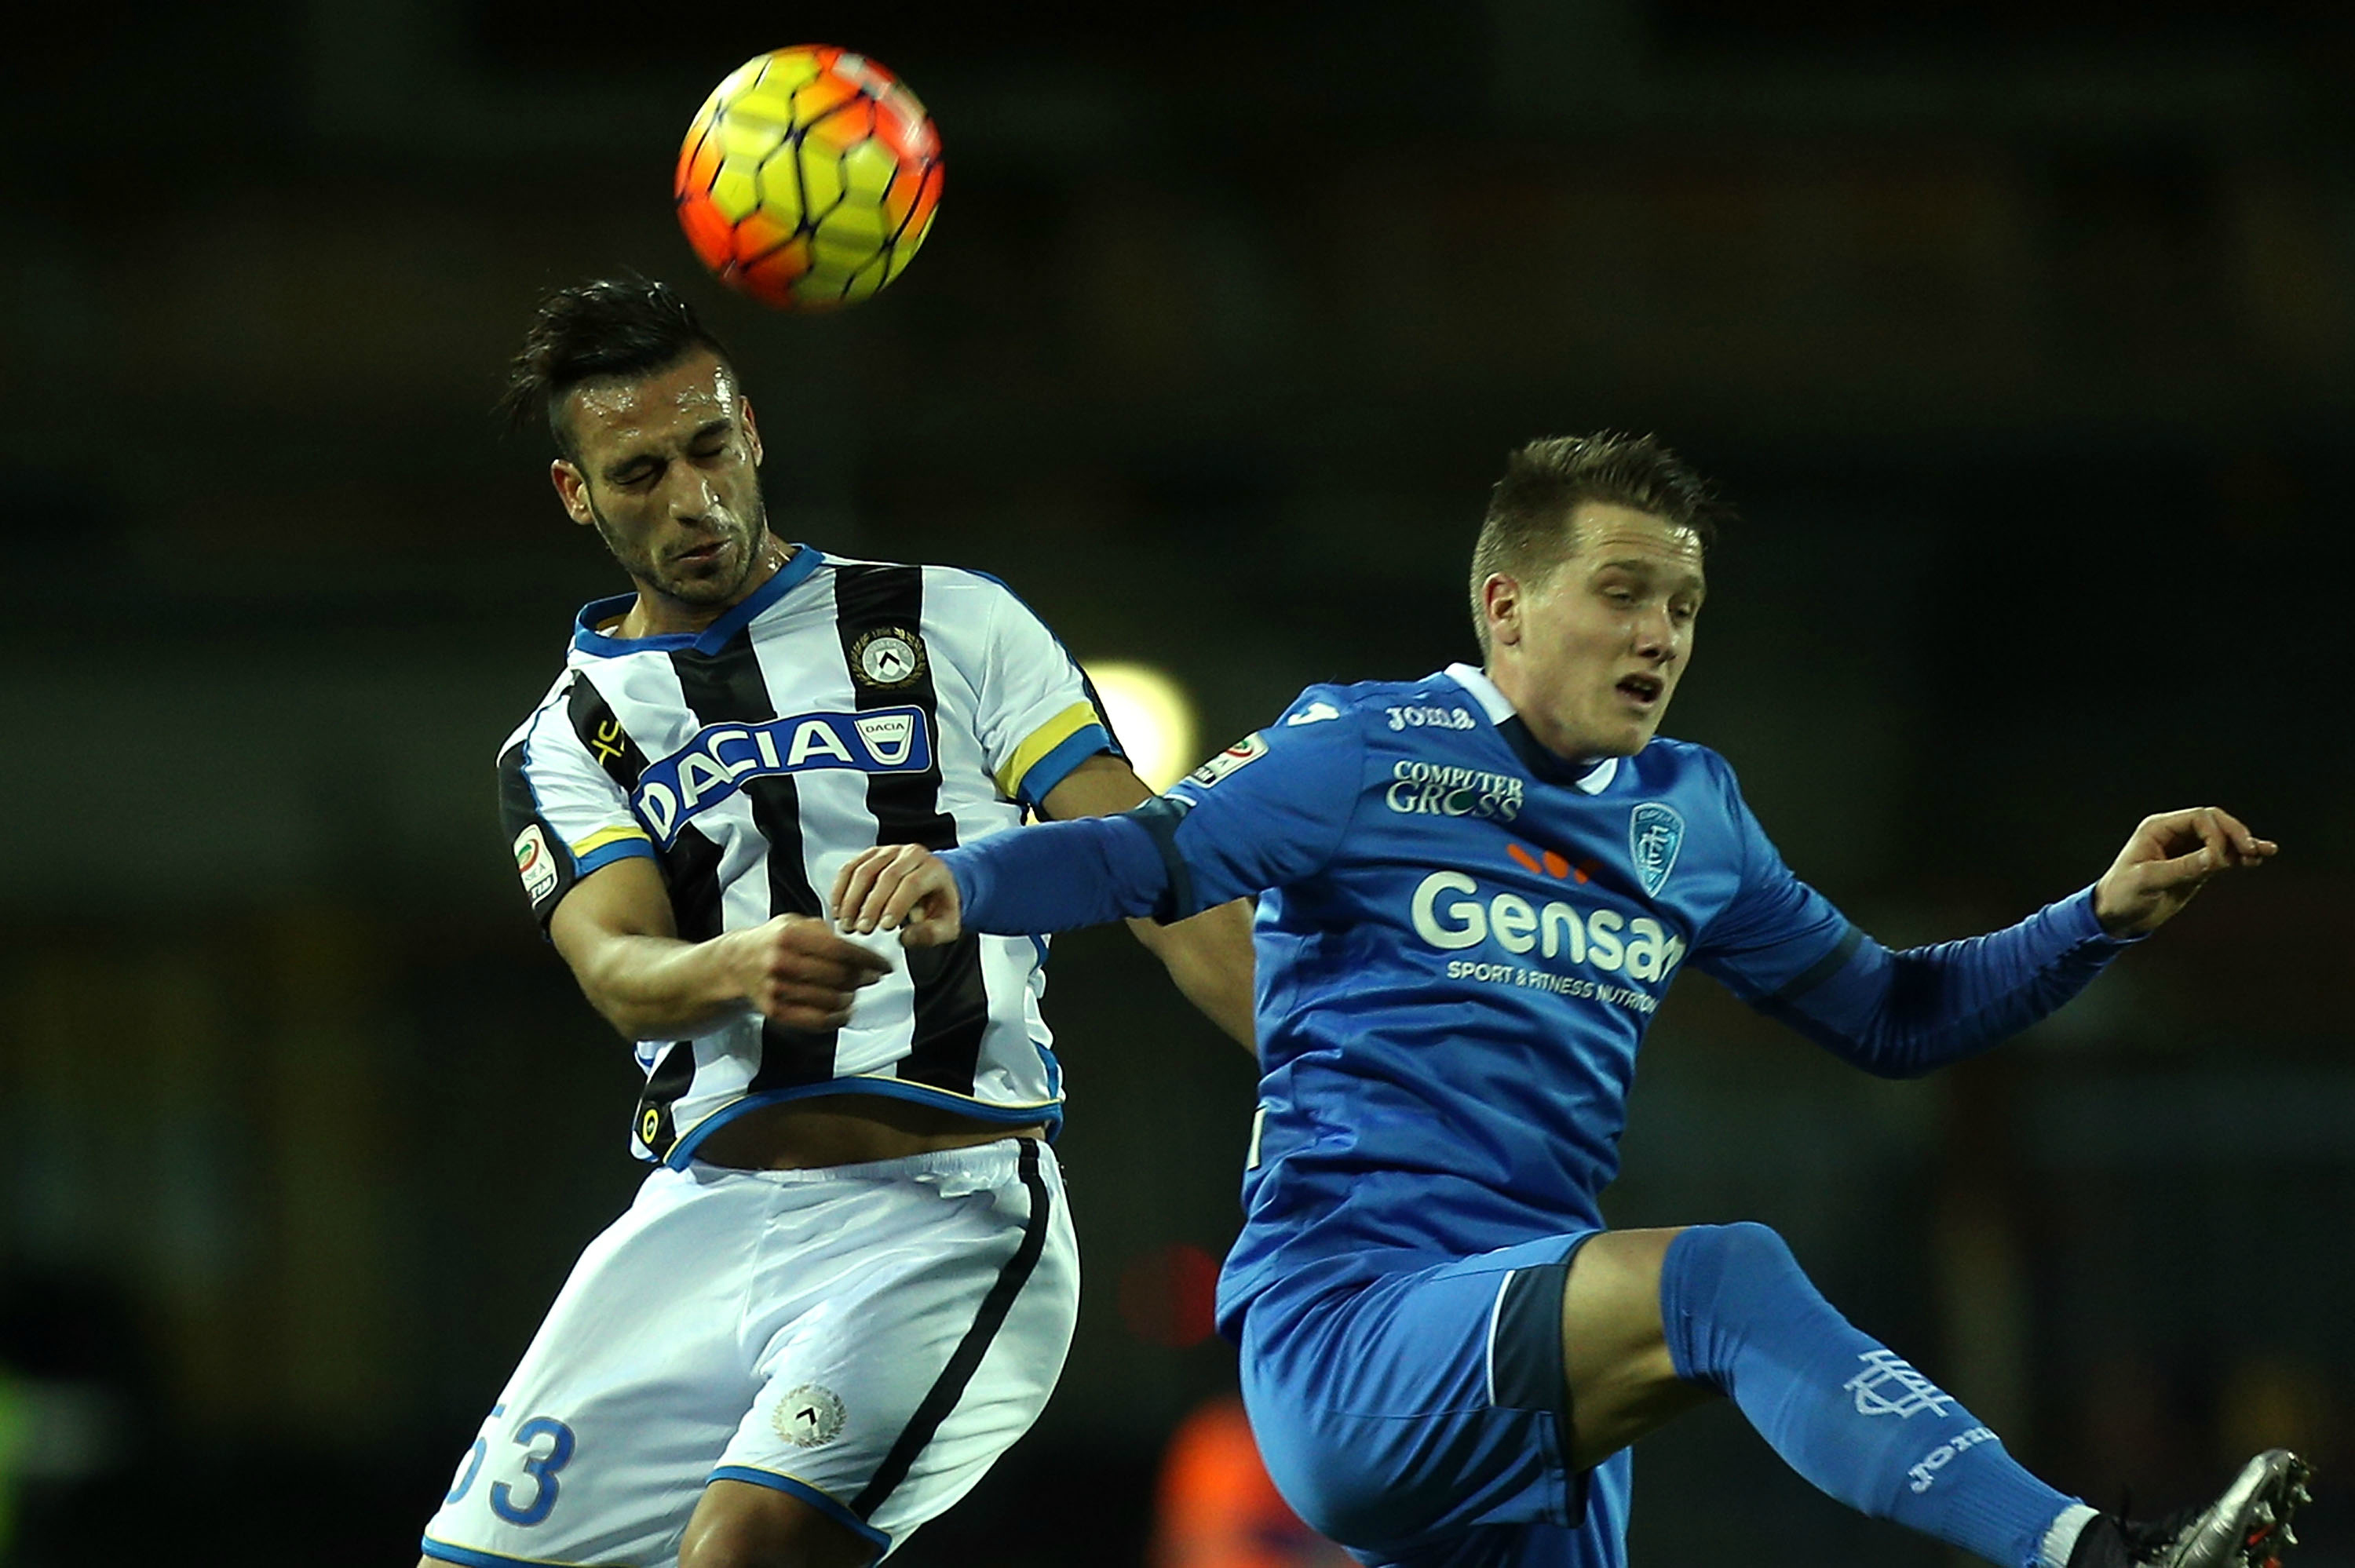 Video: Empoli vs Udinese